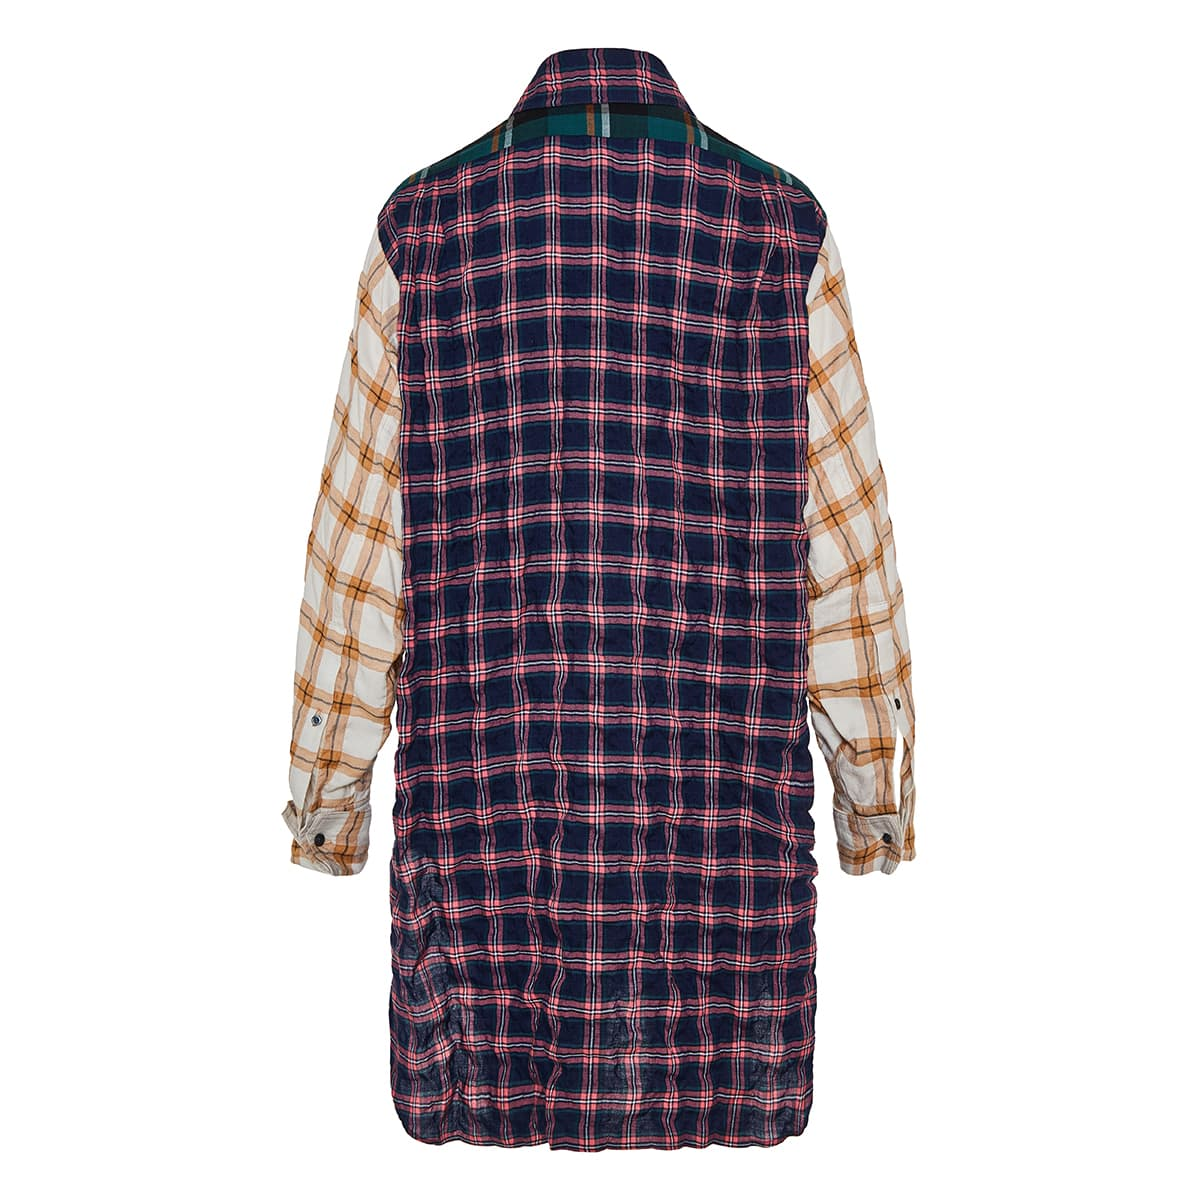 Oversized checked patchwork shirt